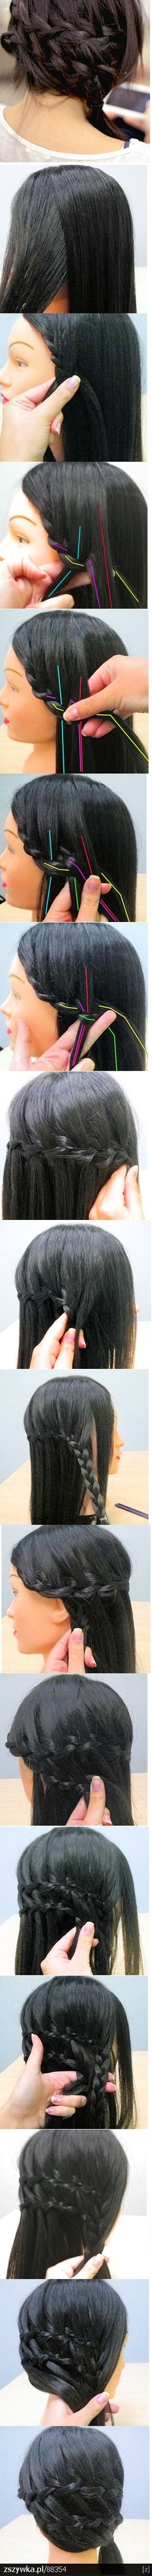 waterfall braid. must try